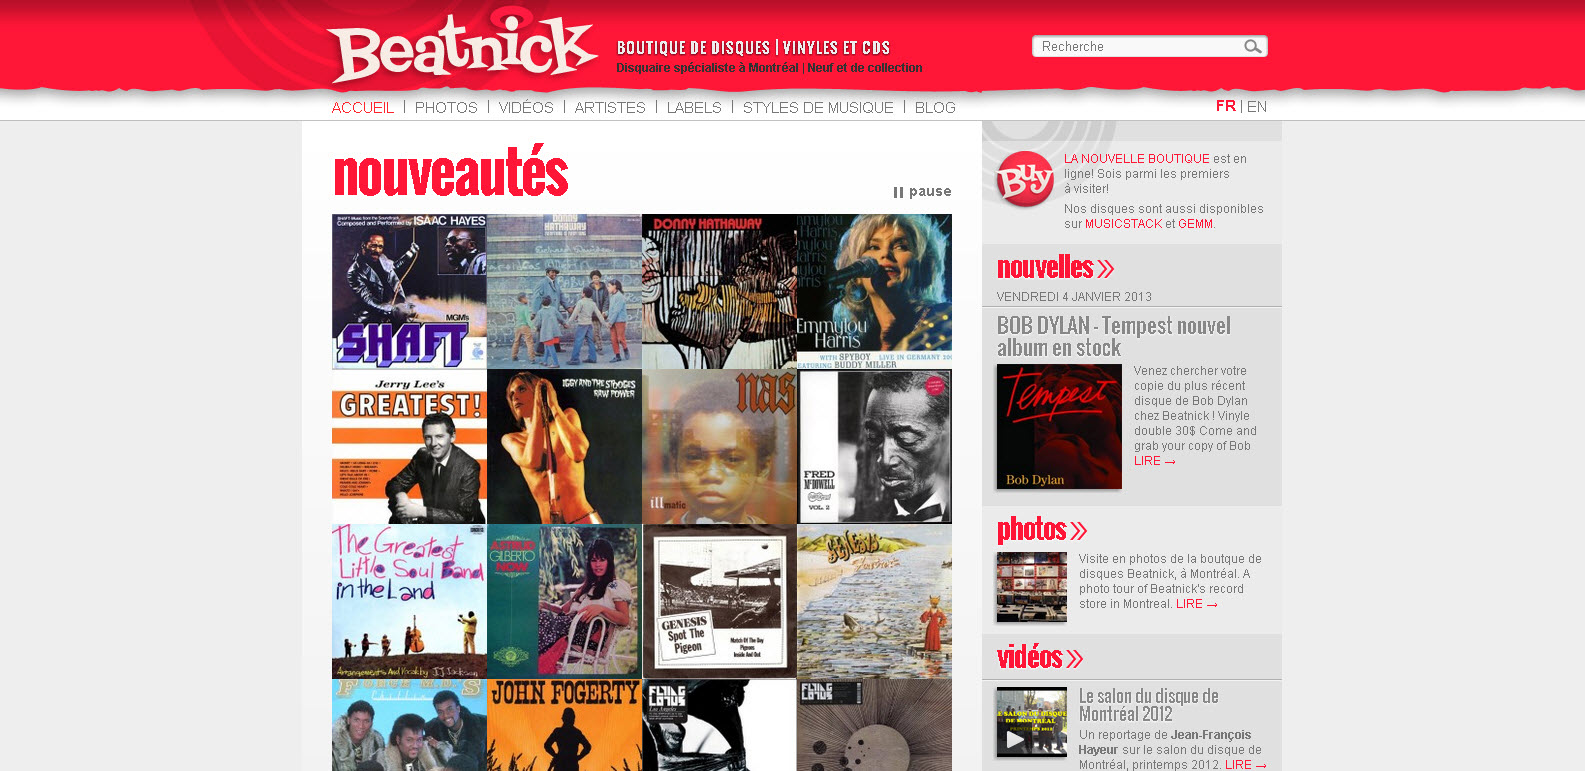 Beatnick Records